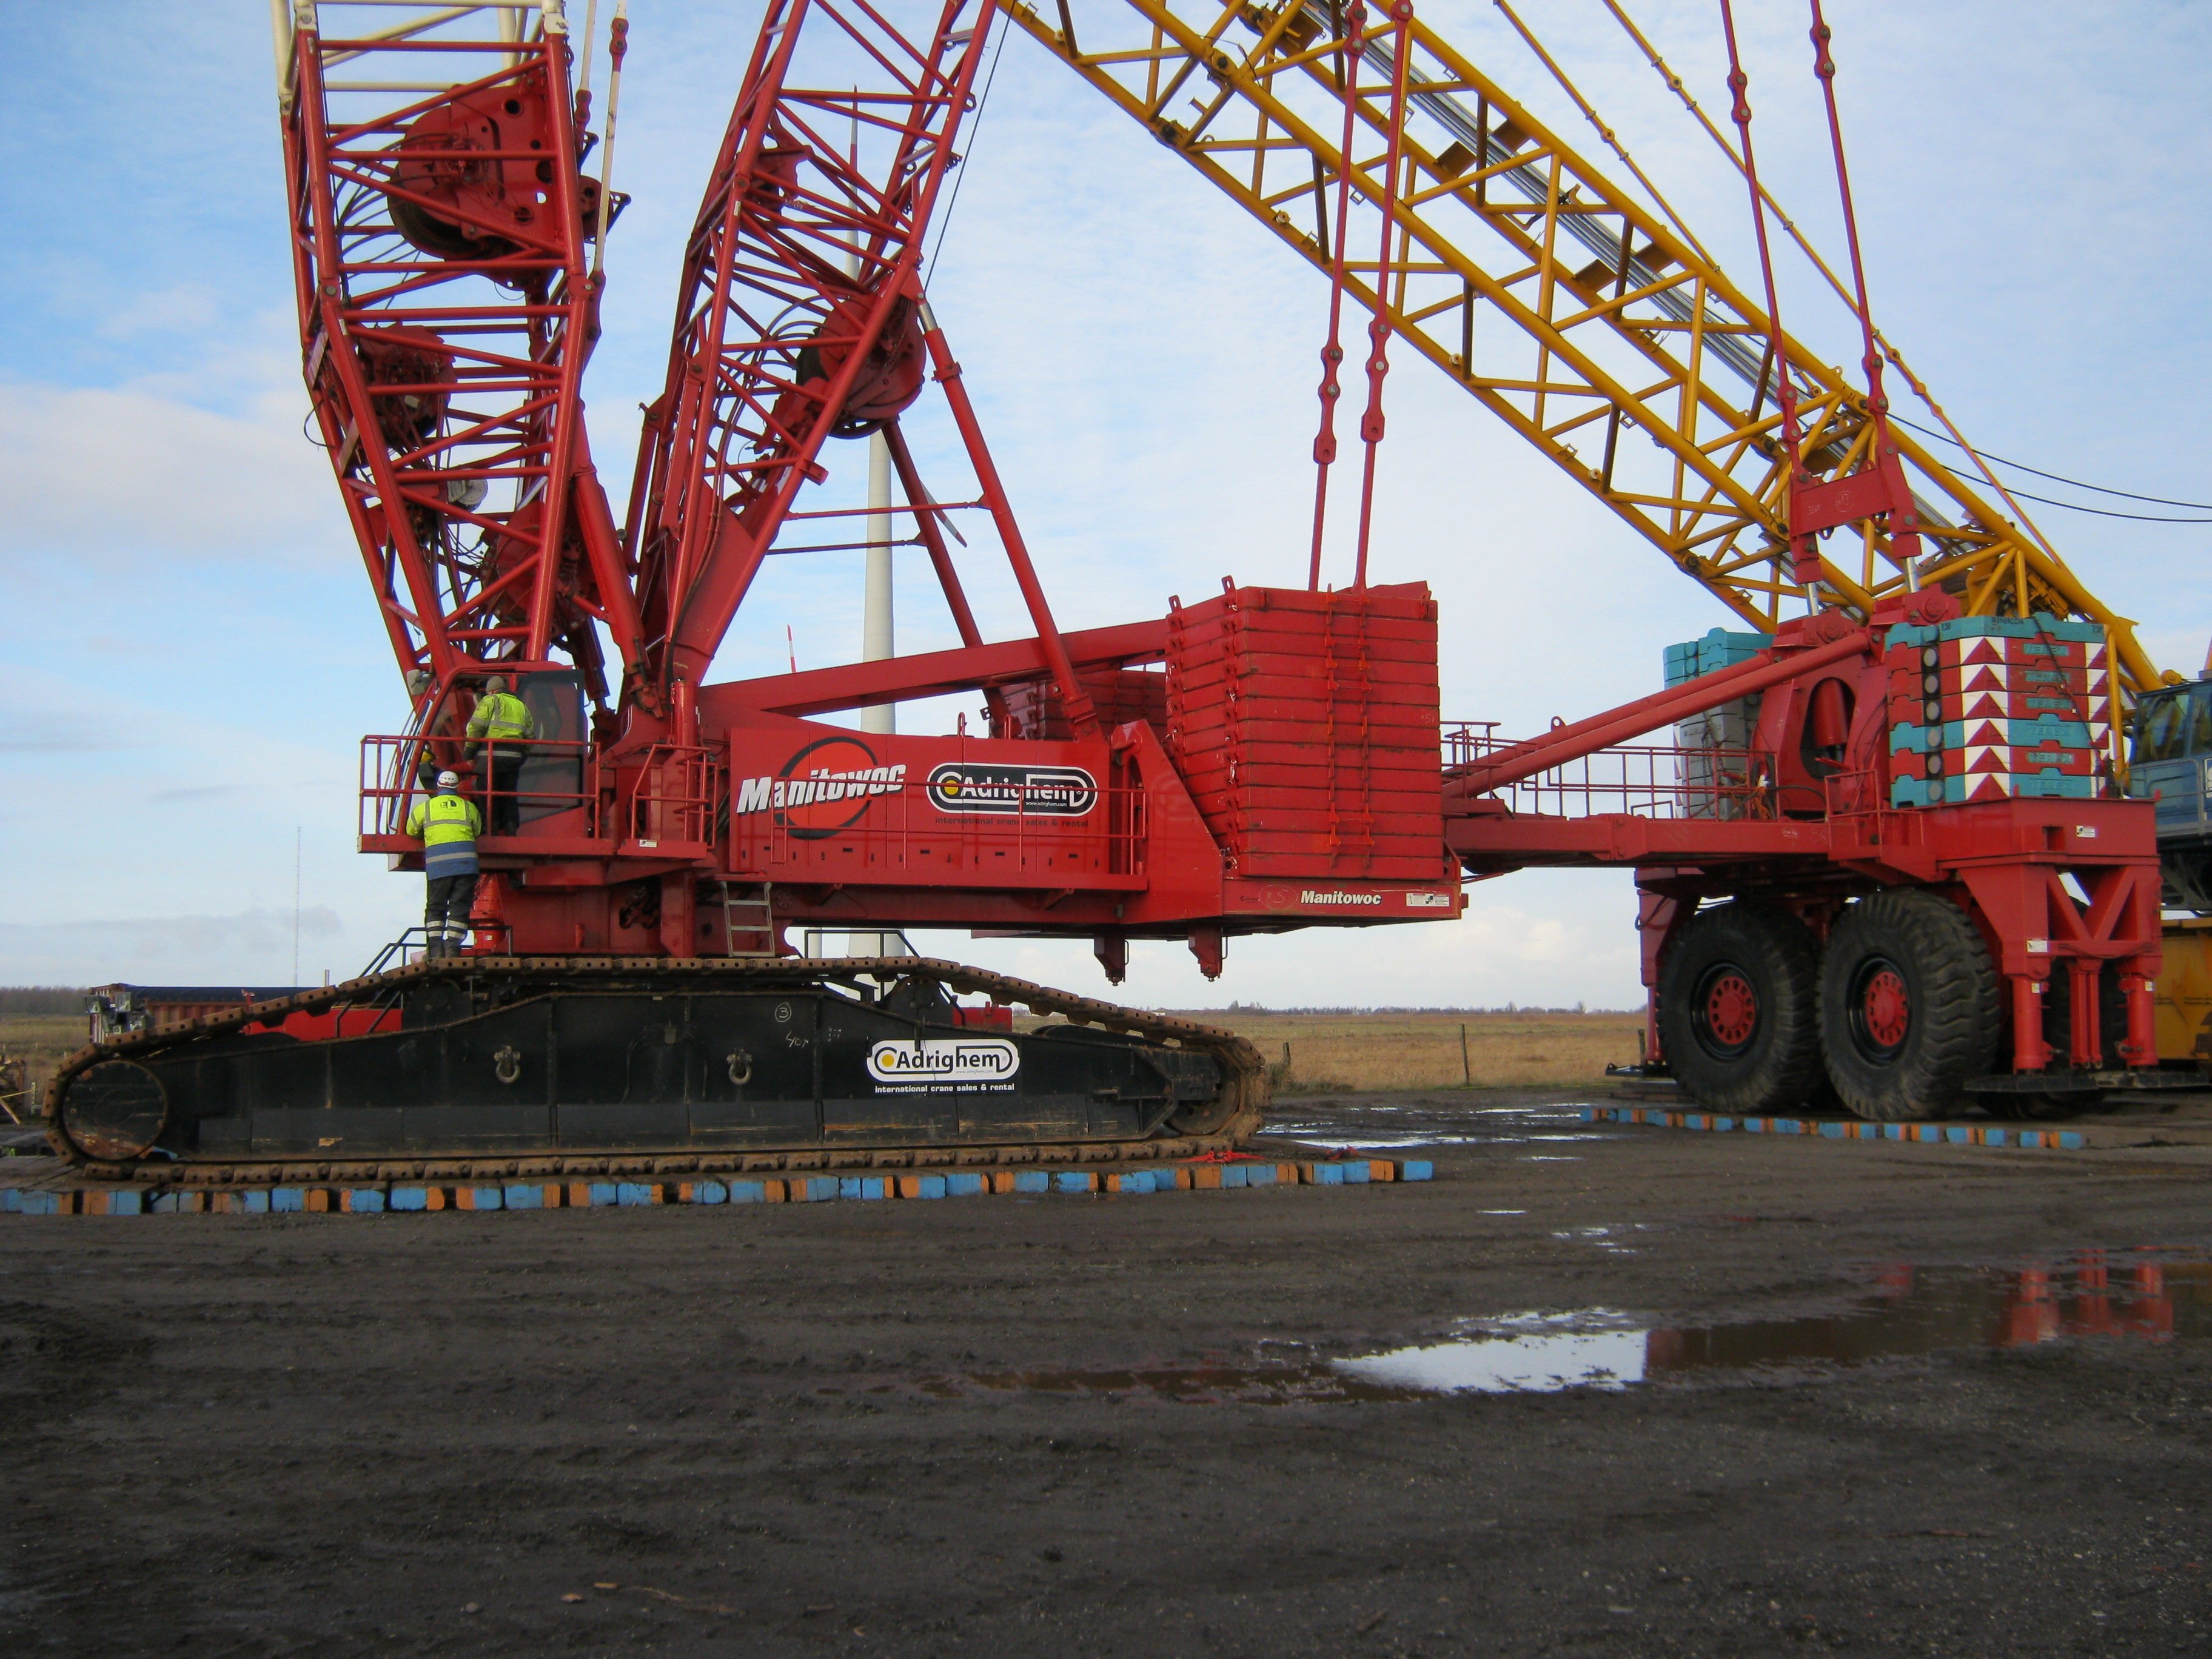 Large Construction Cranes : Coolest mobile crane photos all things cranes